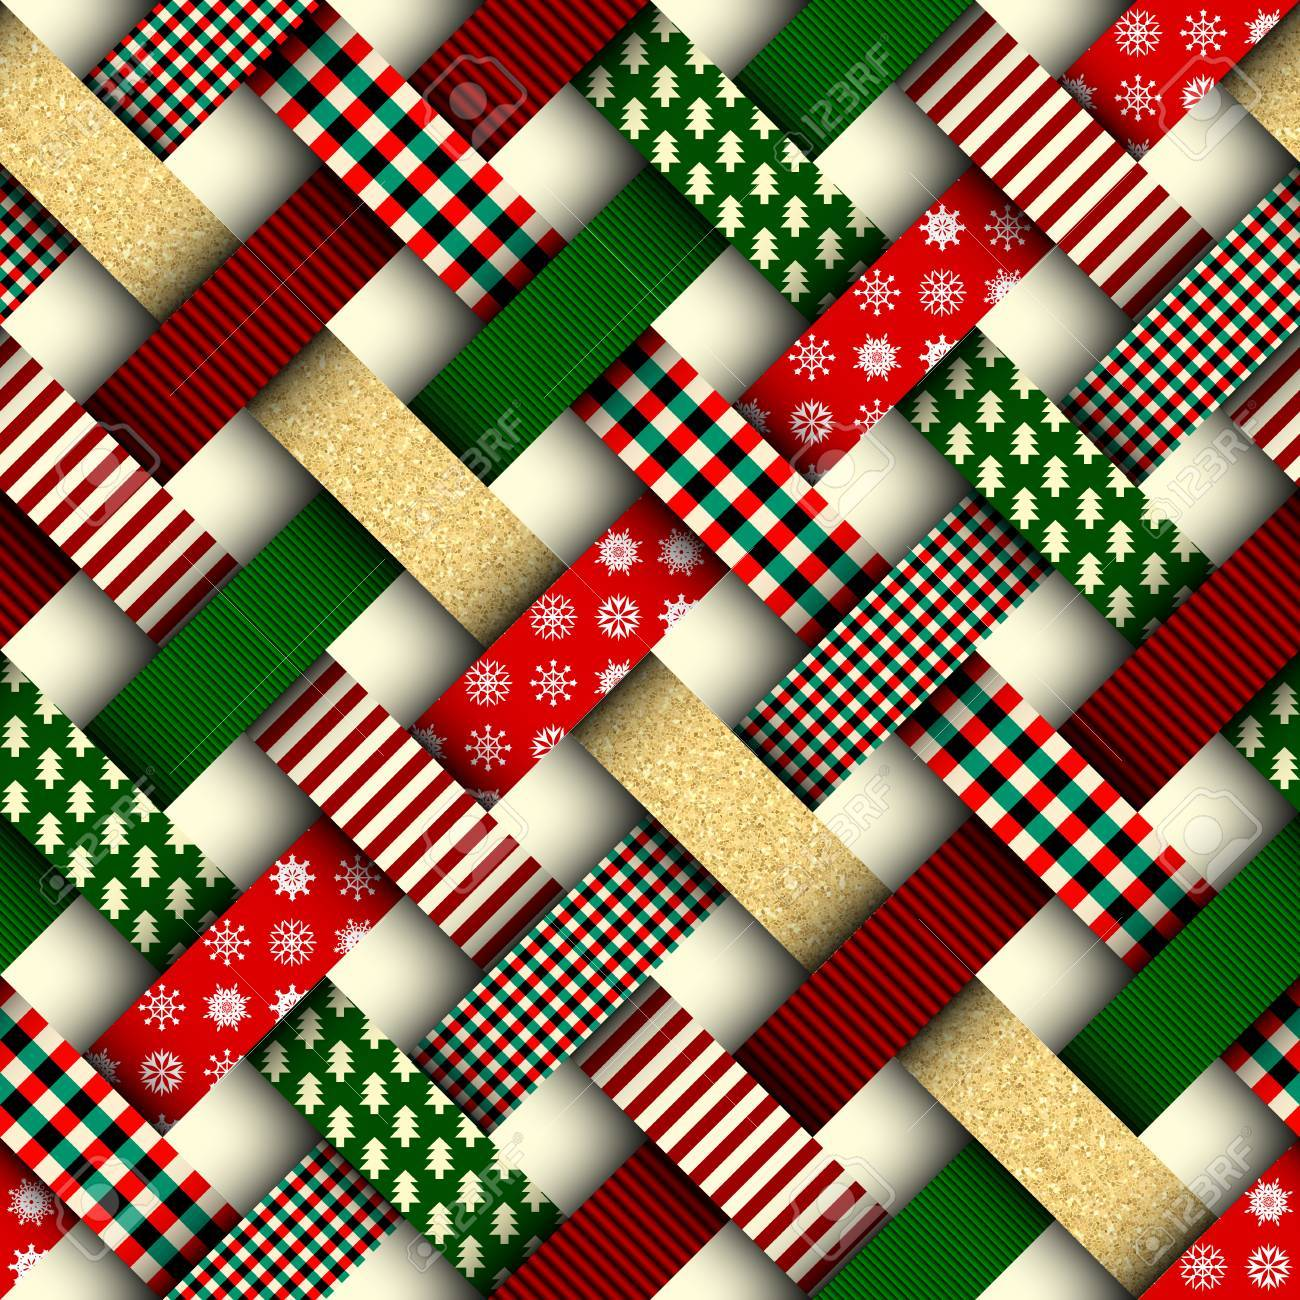 Seamless Christmas background in patchwork style. Interweaving ribbons with Christmas patterns on red background. - 89529164